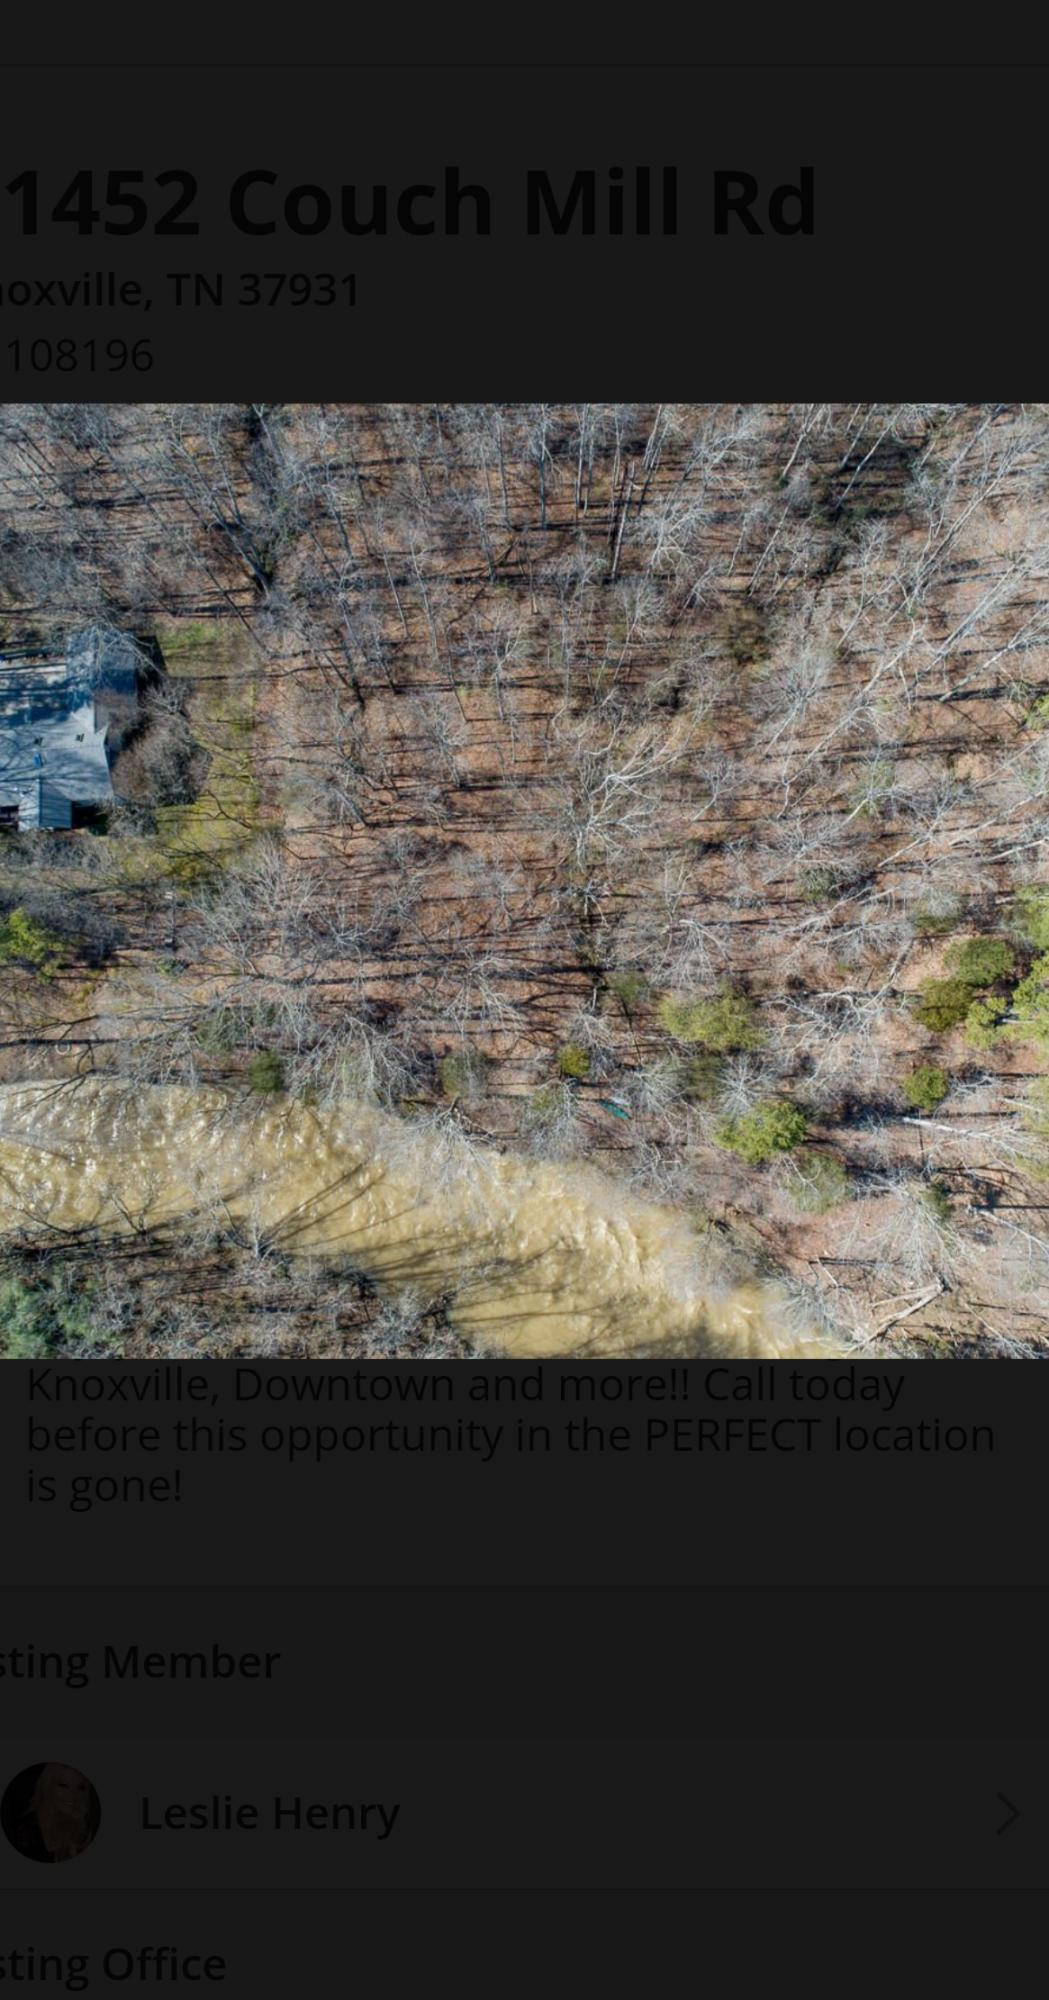 11452 Couch Mill Rd: